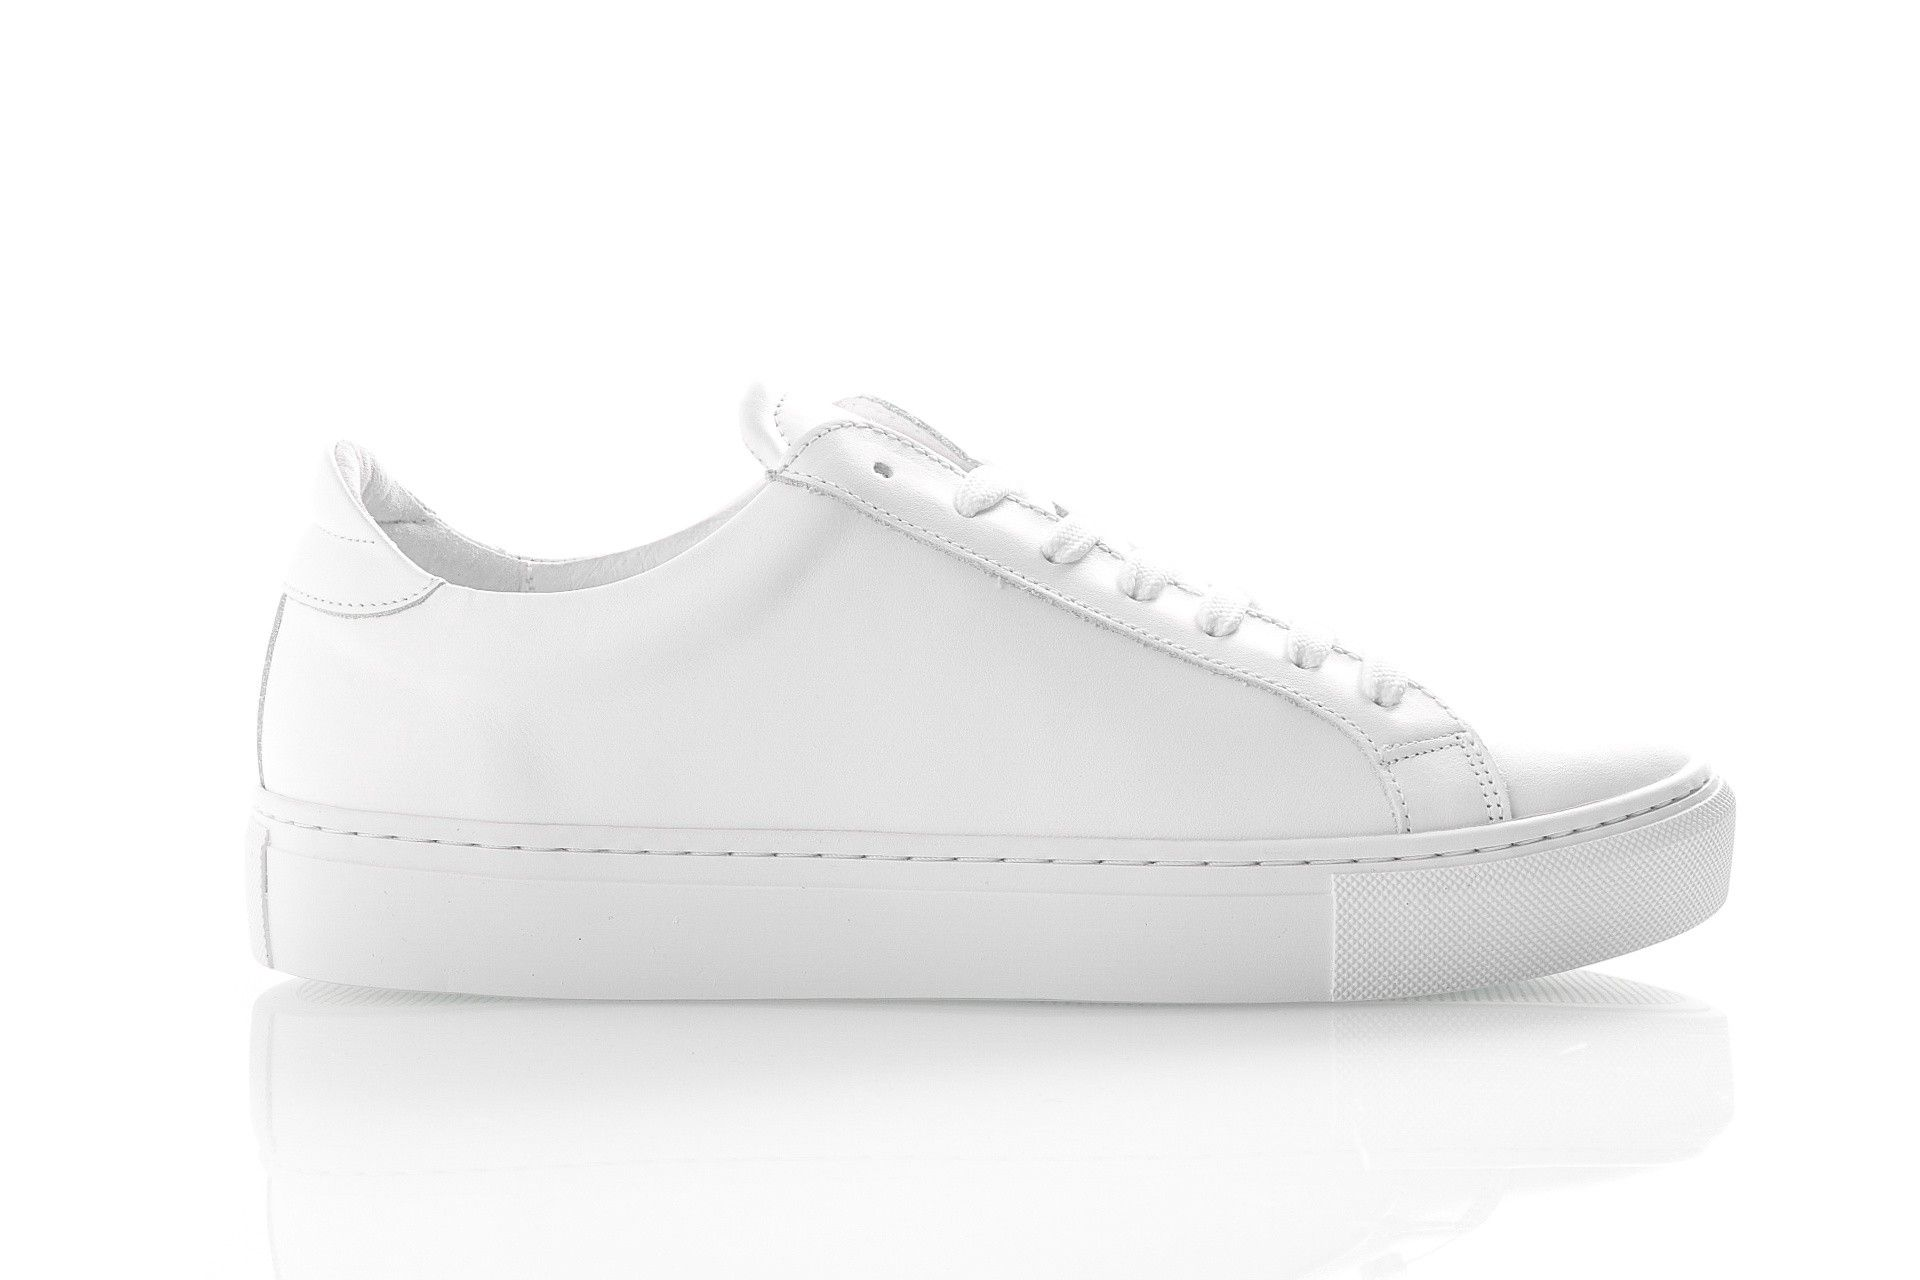 Afbeelding van Garment Project Type Gp1771-100 Sneakers White